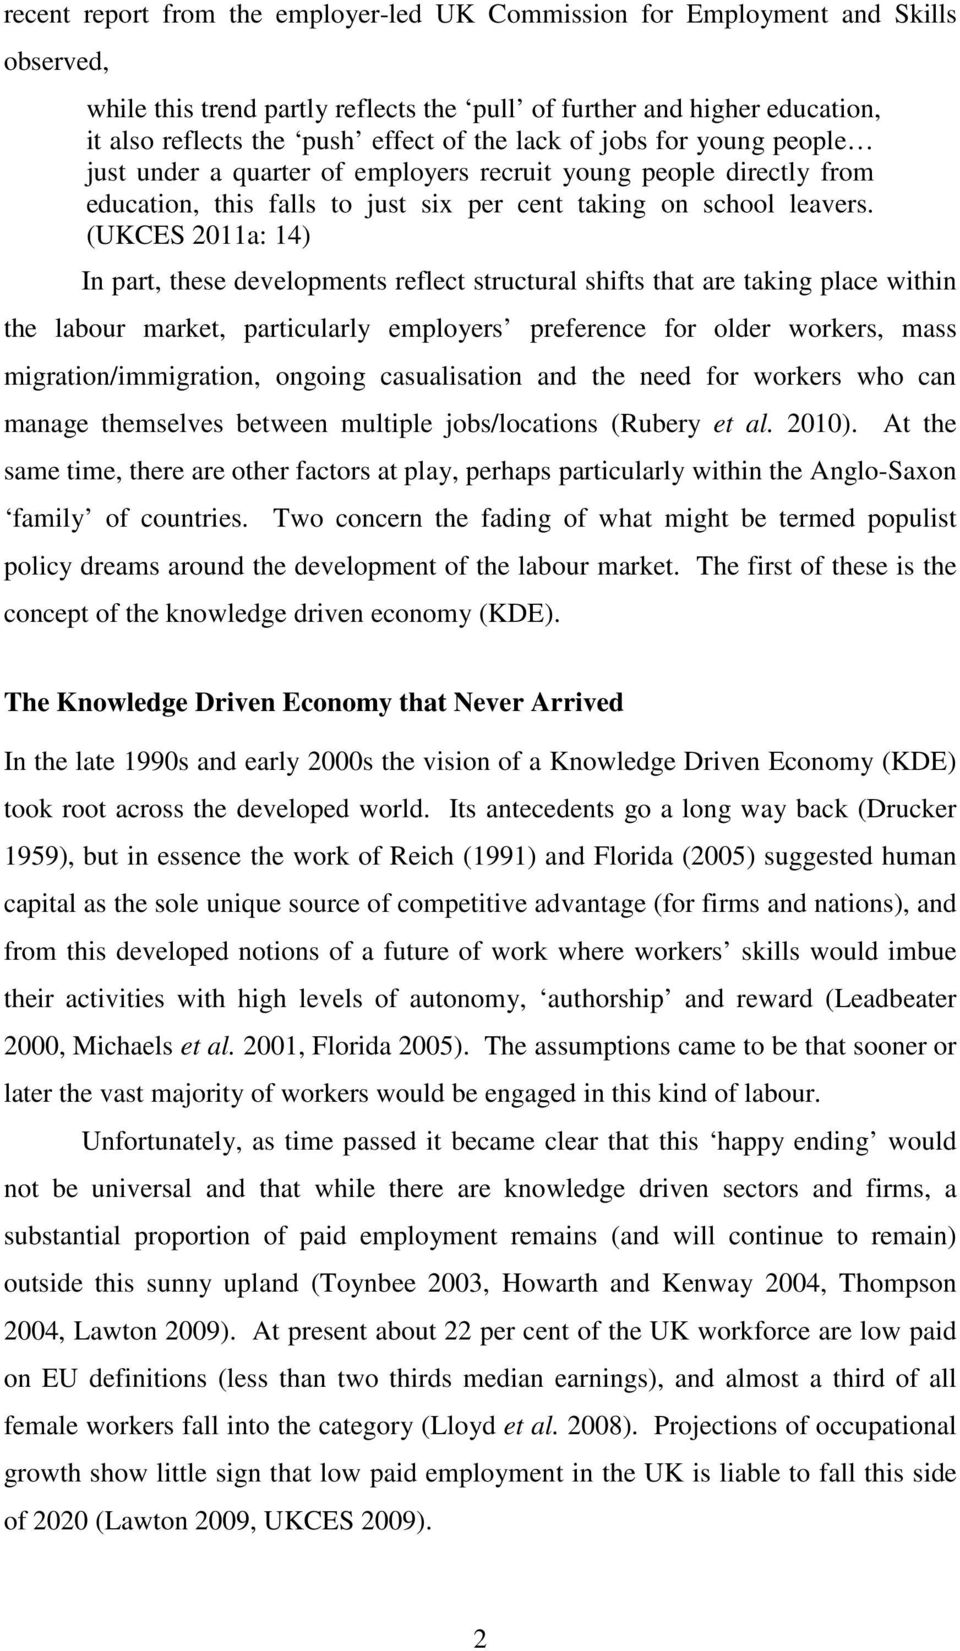 (UKCES 2011a: 14) In part, these developments reflect structural shifts that are taking place within the labour market, particularly employers preference for older workers, mass